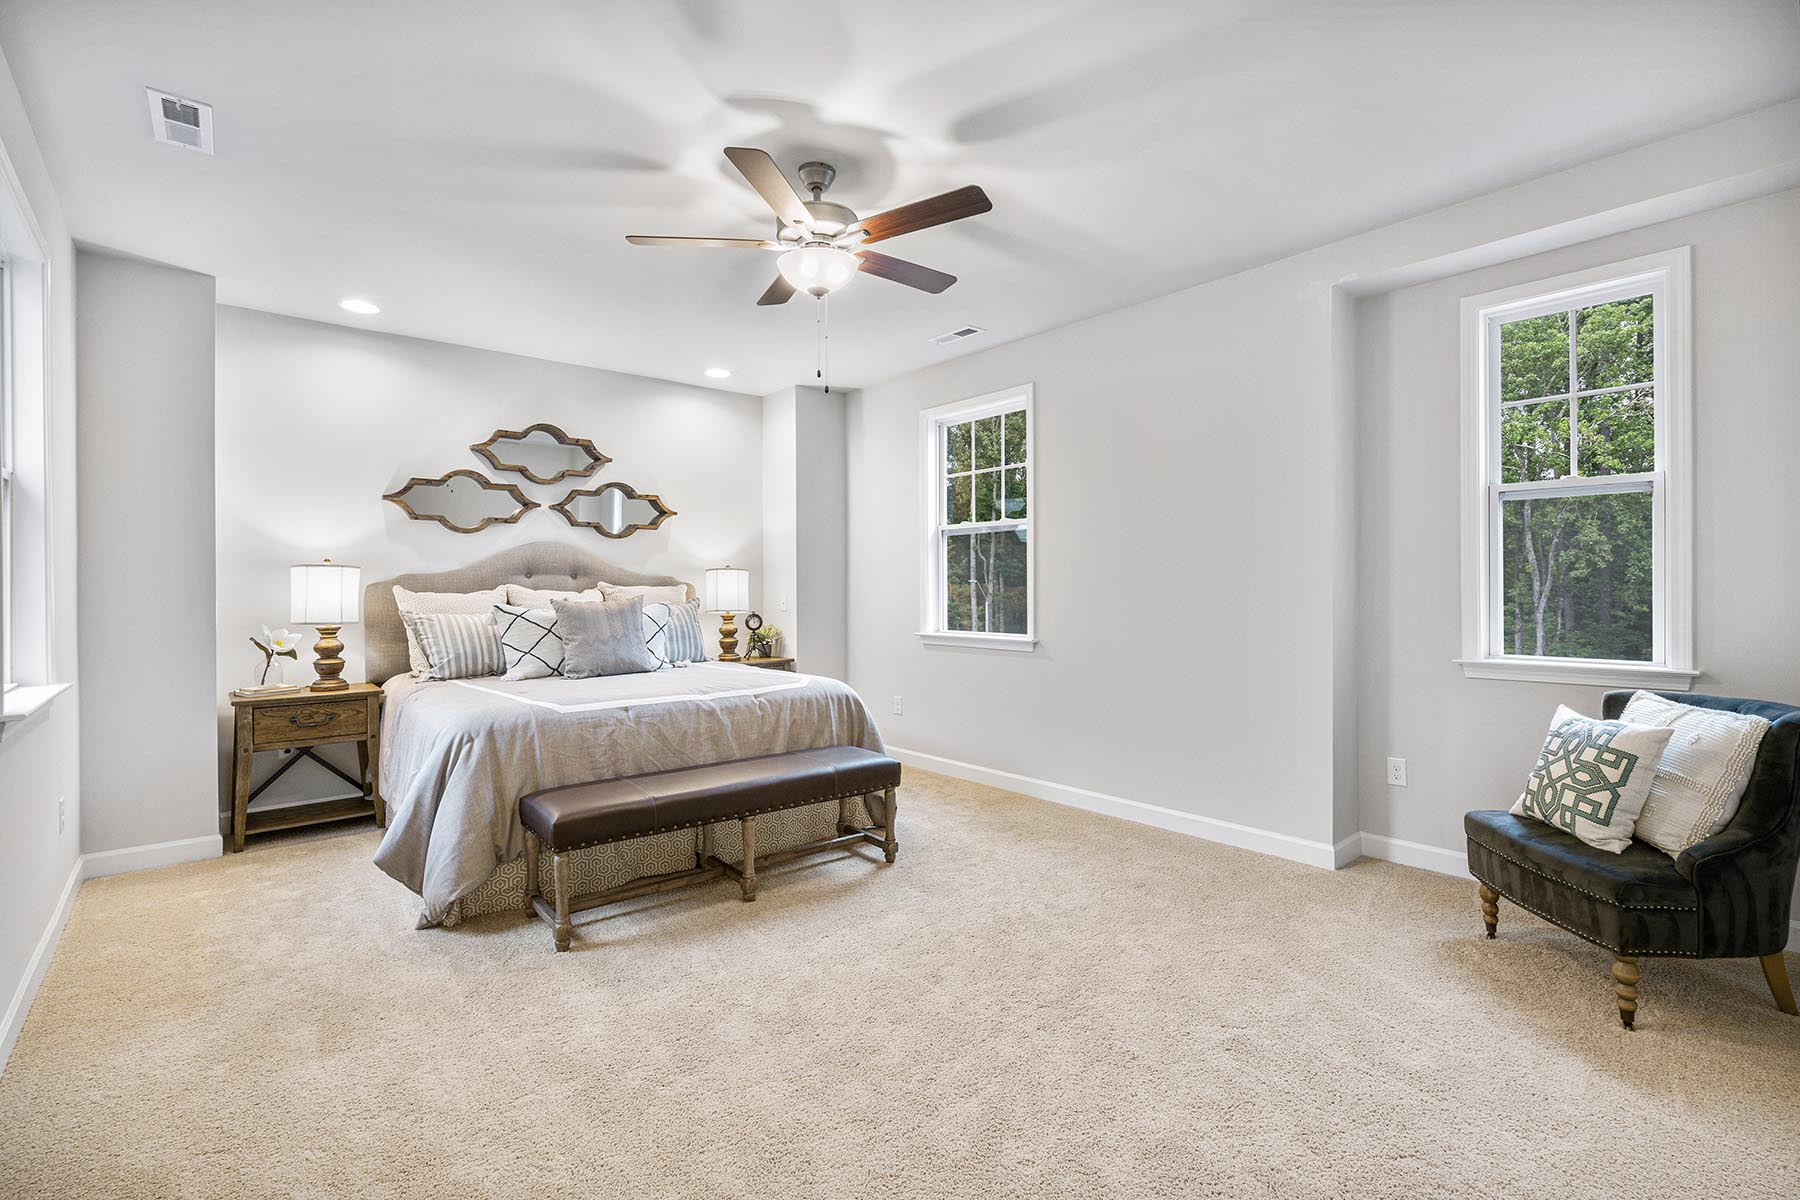 Kendrick Plan Bedroom at Fairview Park in Cary North Carolina by Mattamy Homes